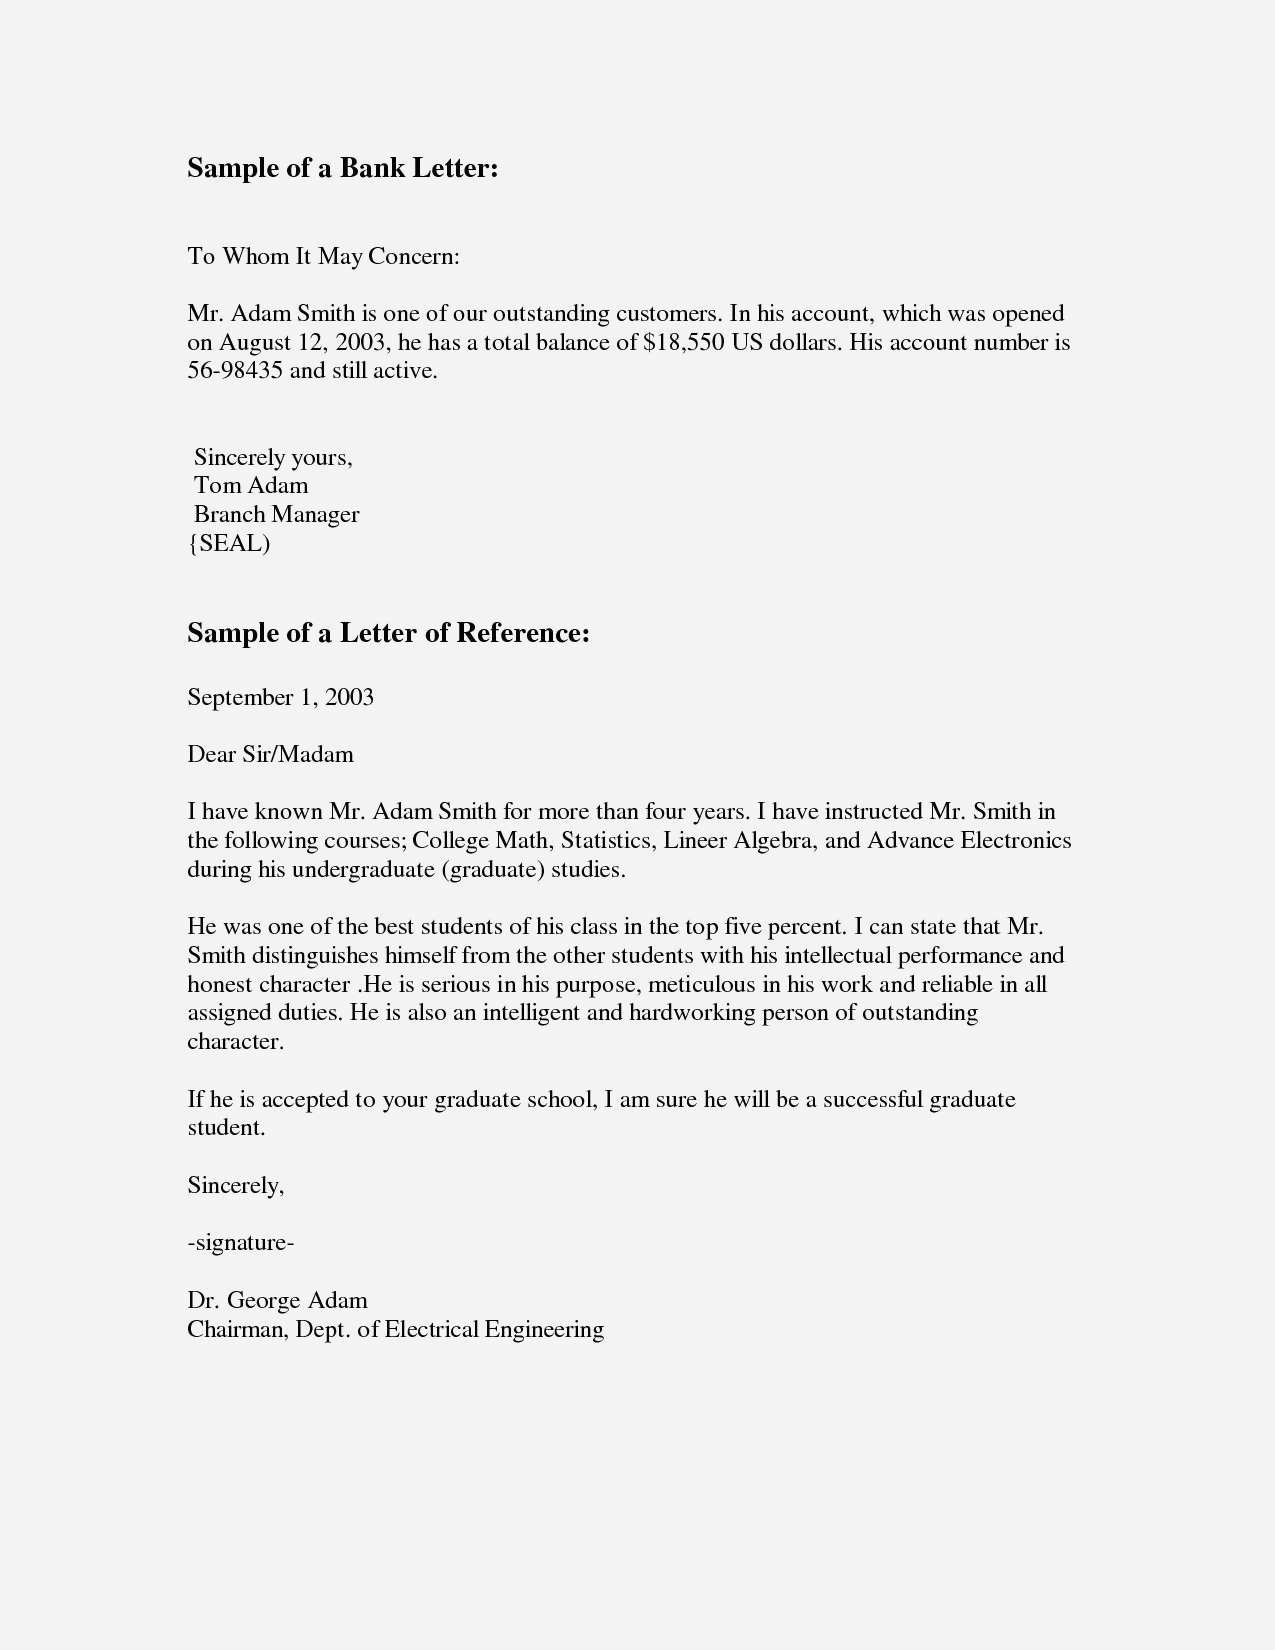 references letter template Collection-Formal Letter Template Unique bylaws Template 0d Wallpapers 50 ficial Letter Template 20-h